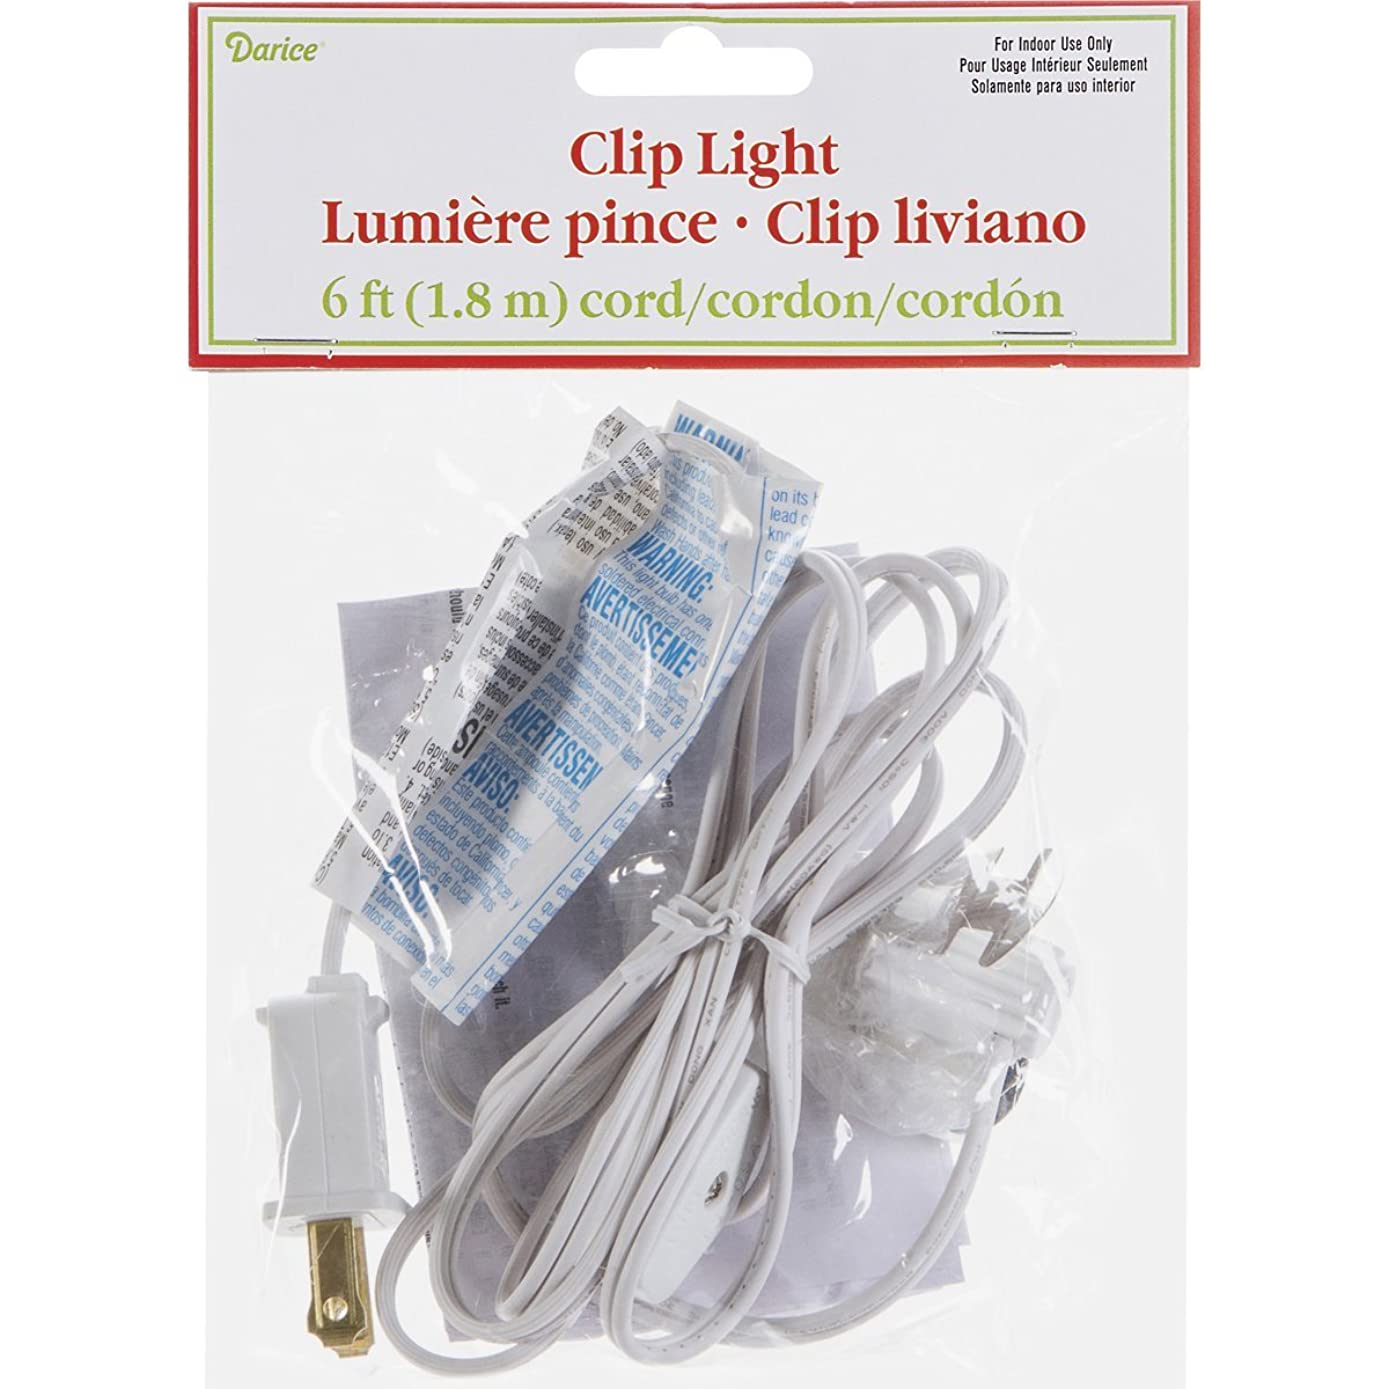 Darice Accessory Cord with One Bulb Light – 6' White Cord with On/Off Switch Plugs Into Electrical Outlet – Perfect for Lighting Holiday Decorations and Craft Projects (1 Cord)